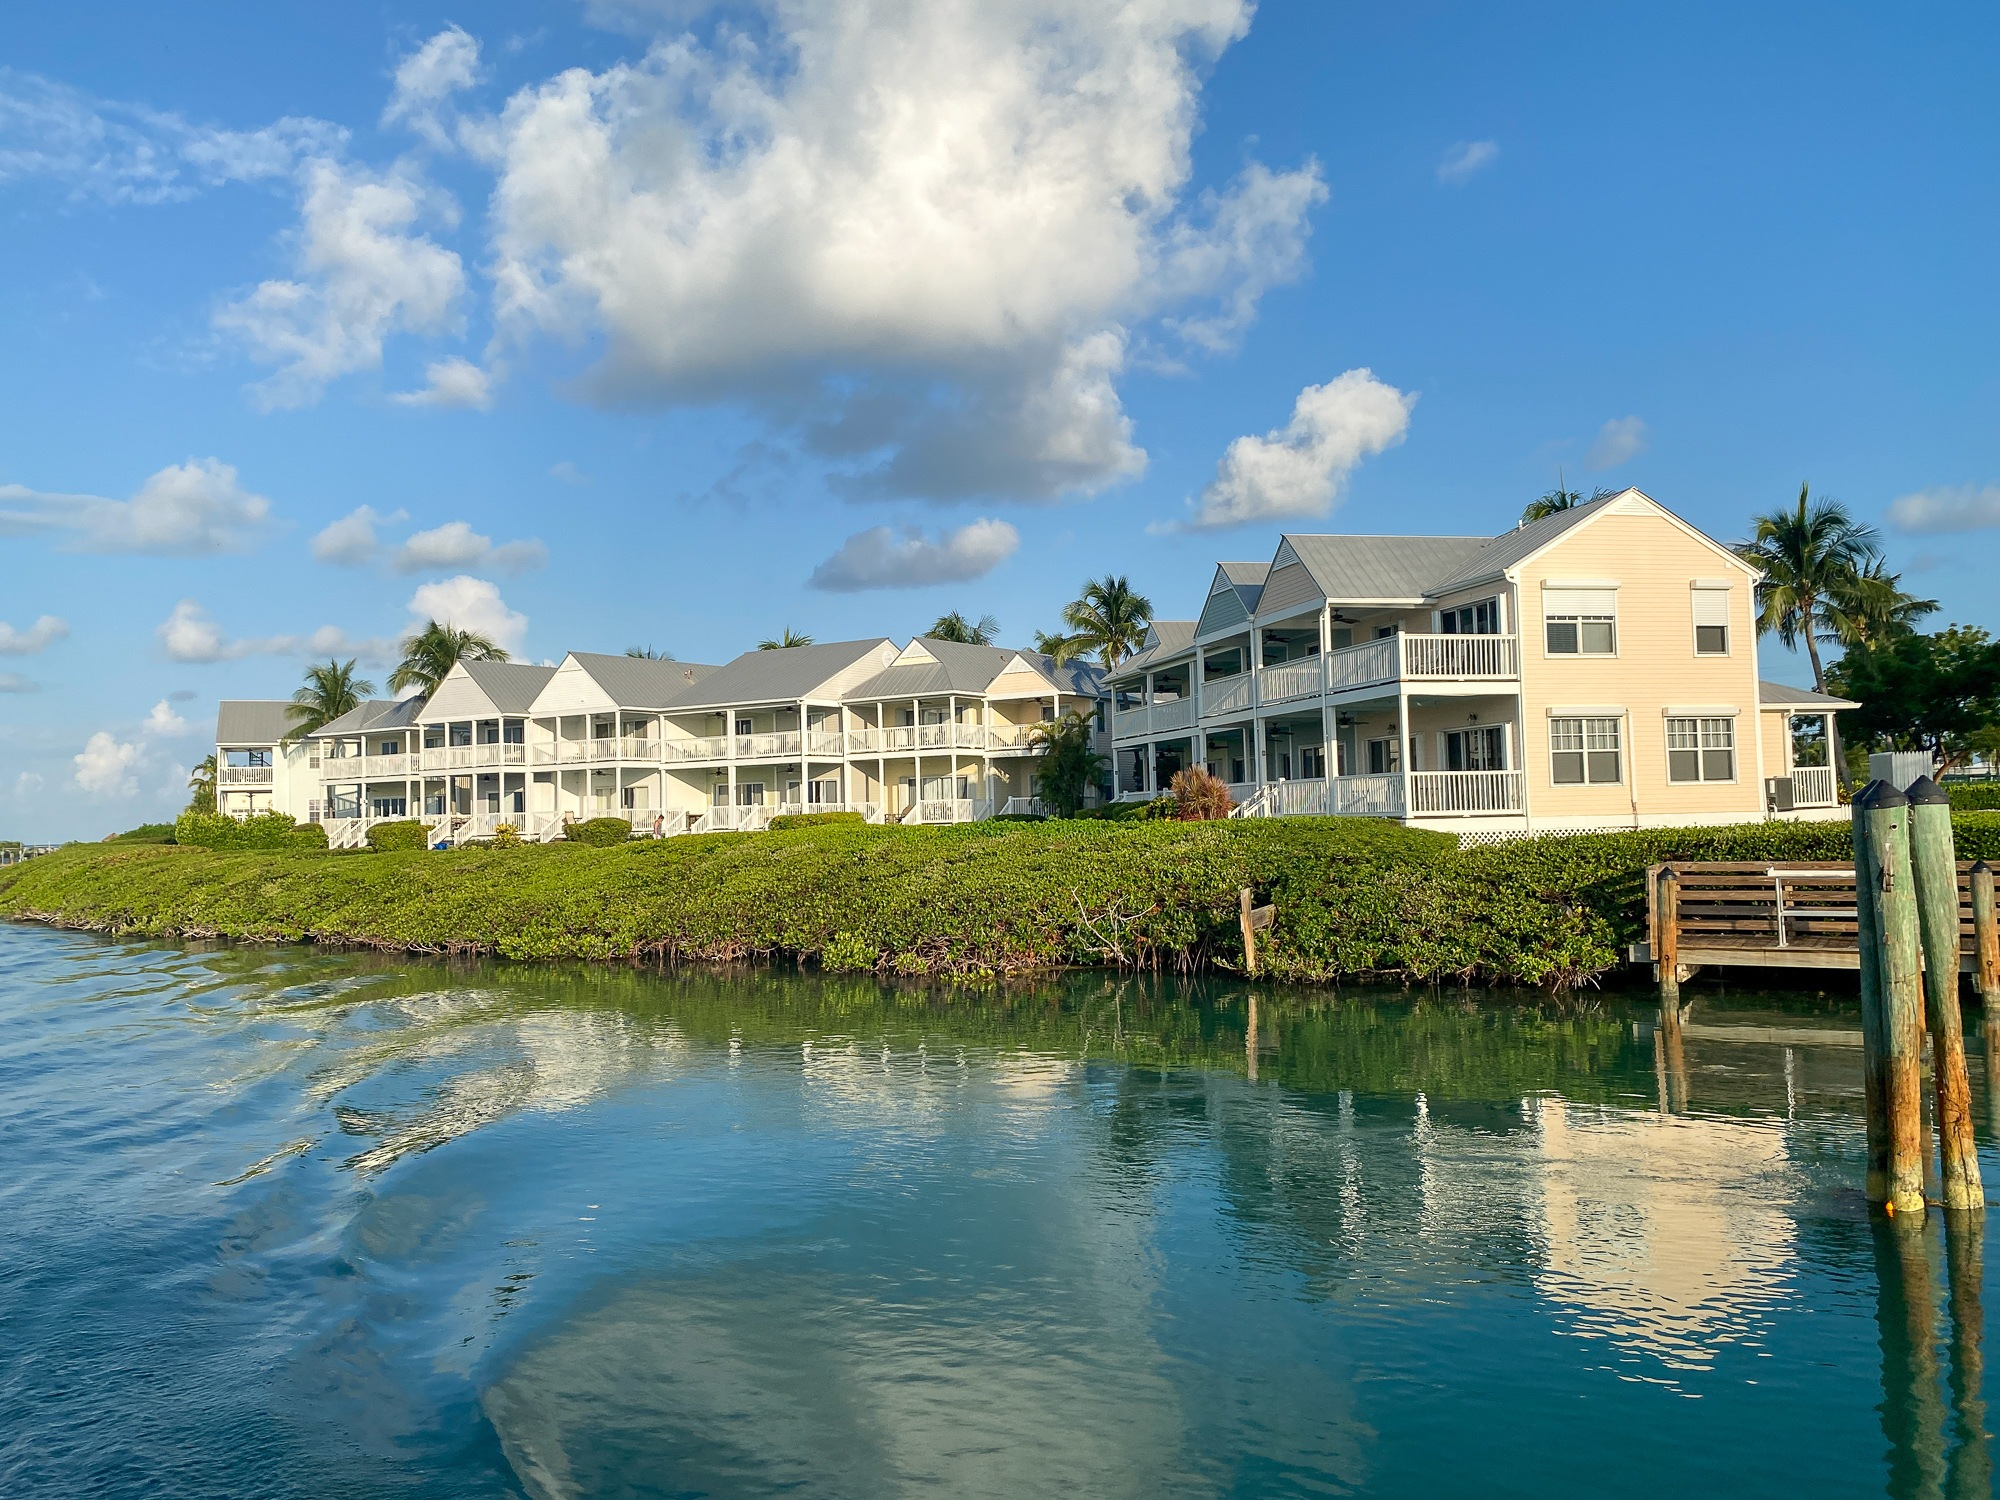 View of Hawks Cay Resort villas from the water